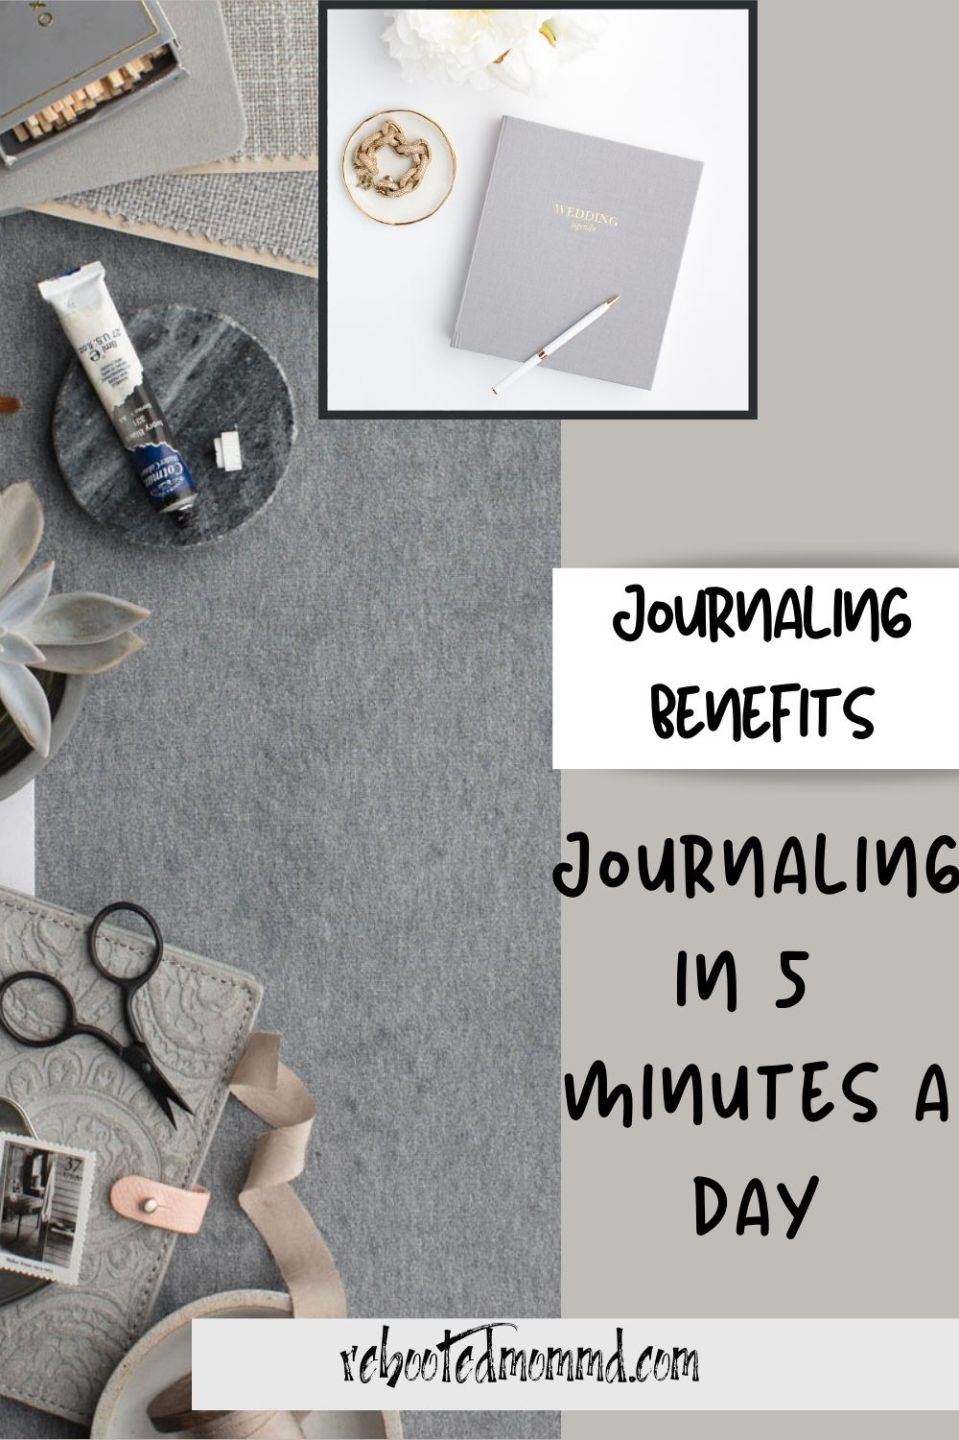 How to Journal in Just 5 Minutes a Day